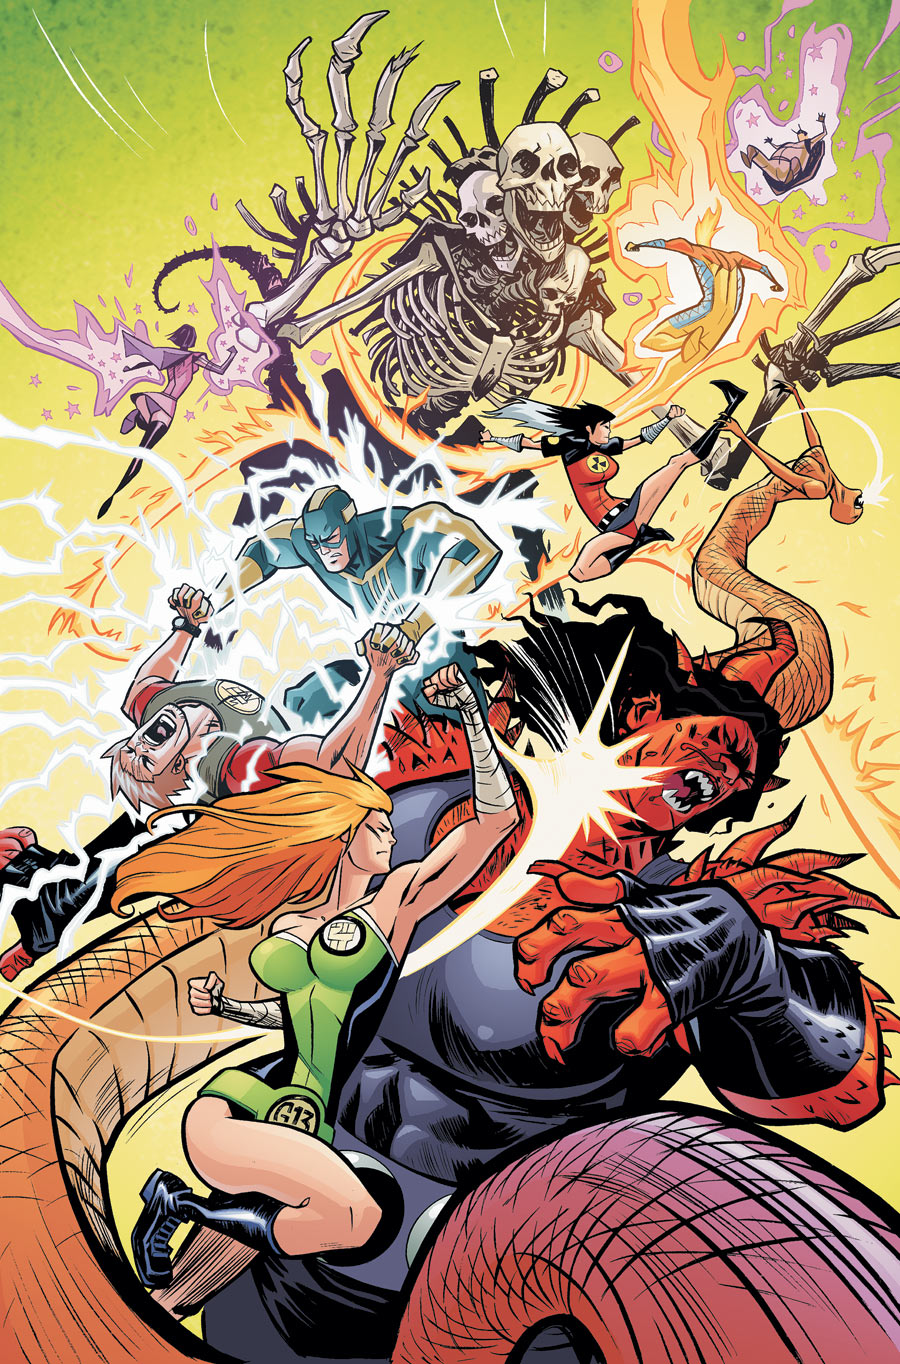 Gen 13 Vol 4 32 Textless.jpg